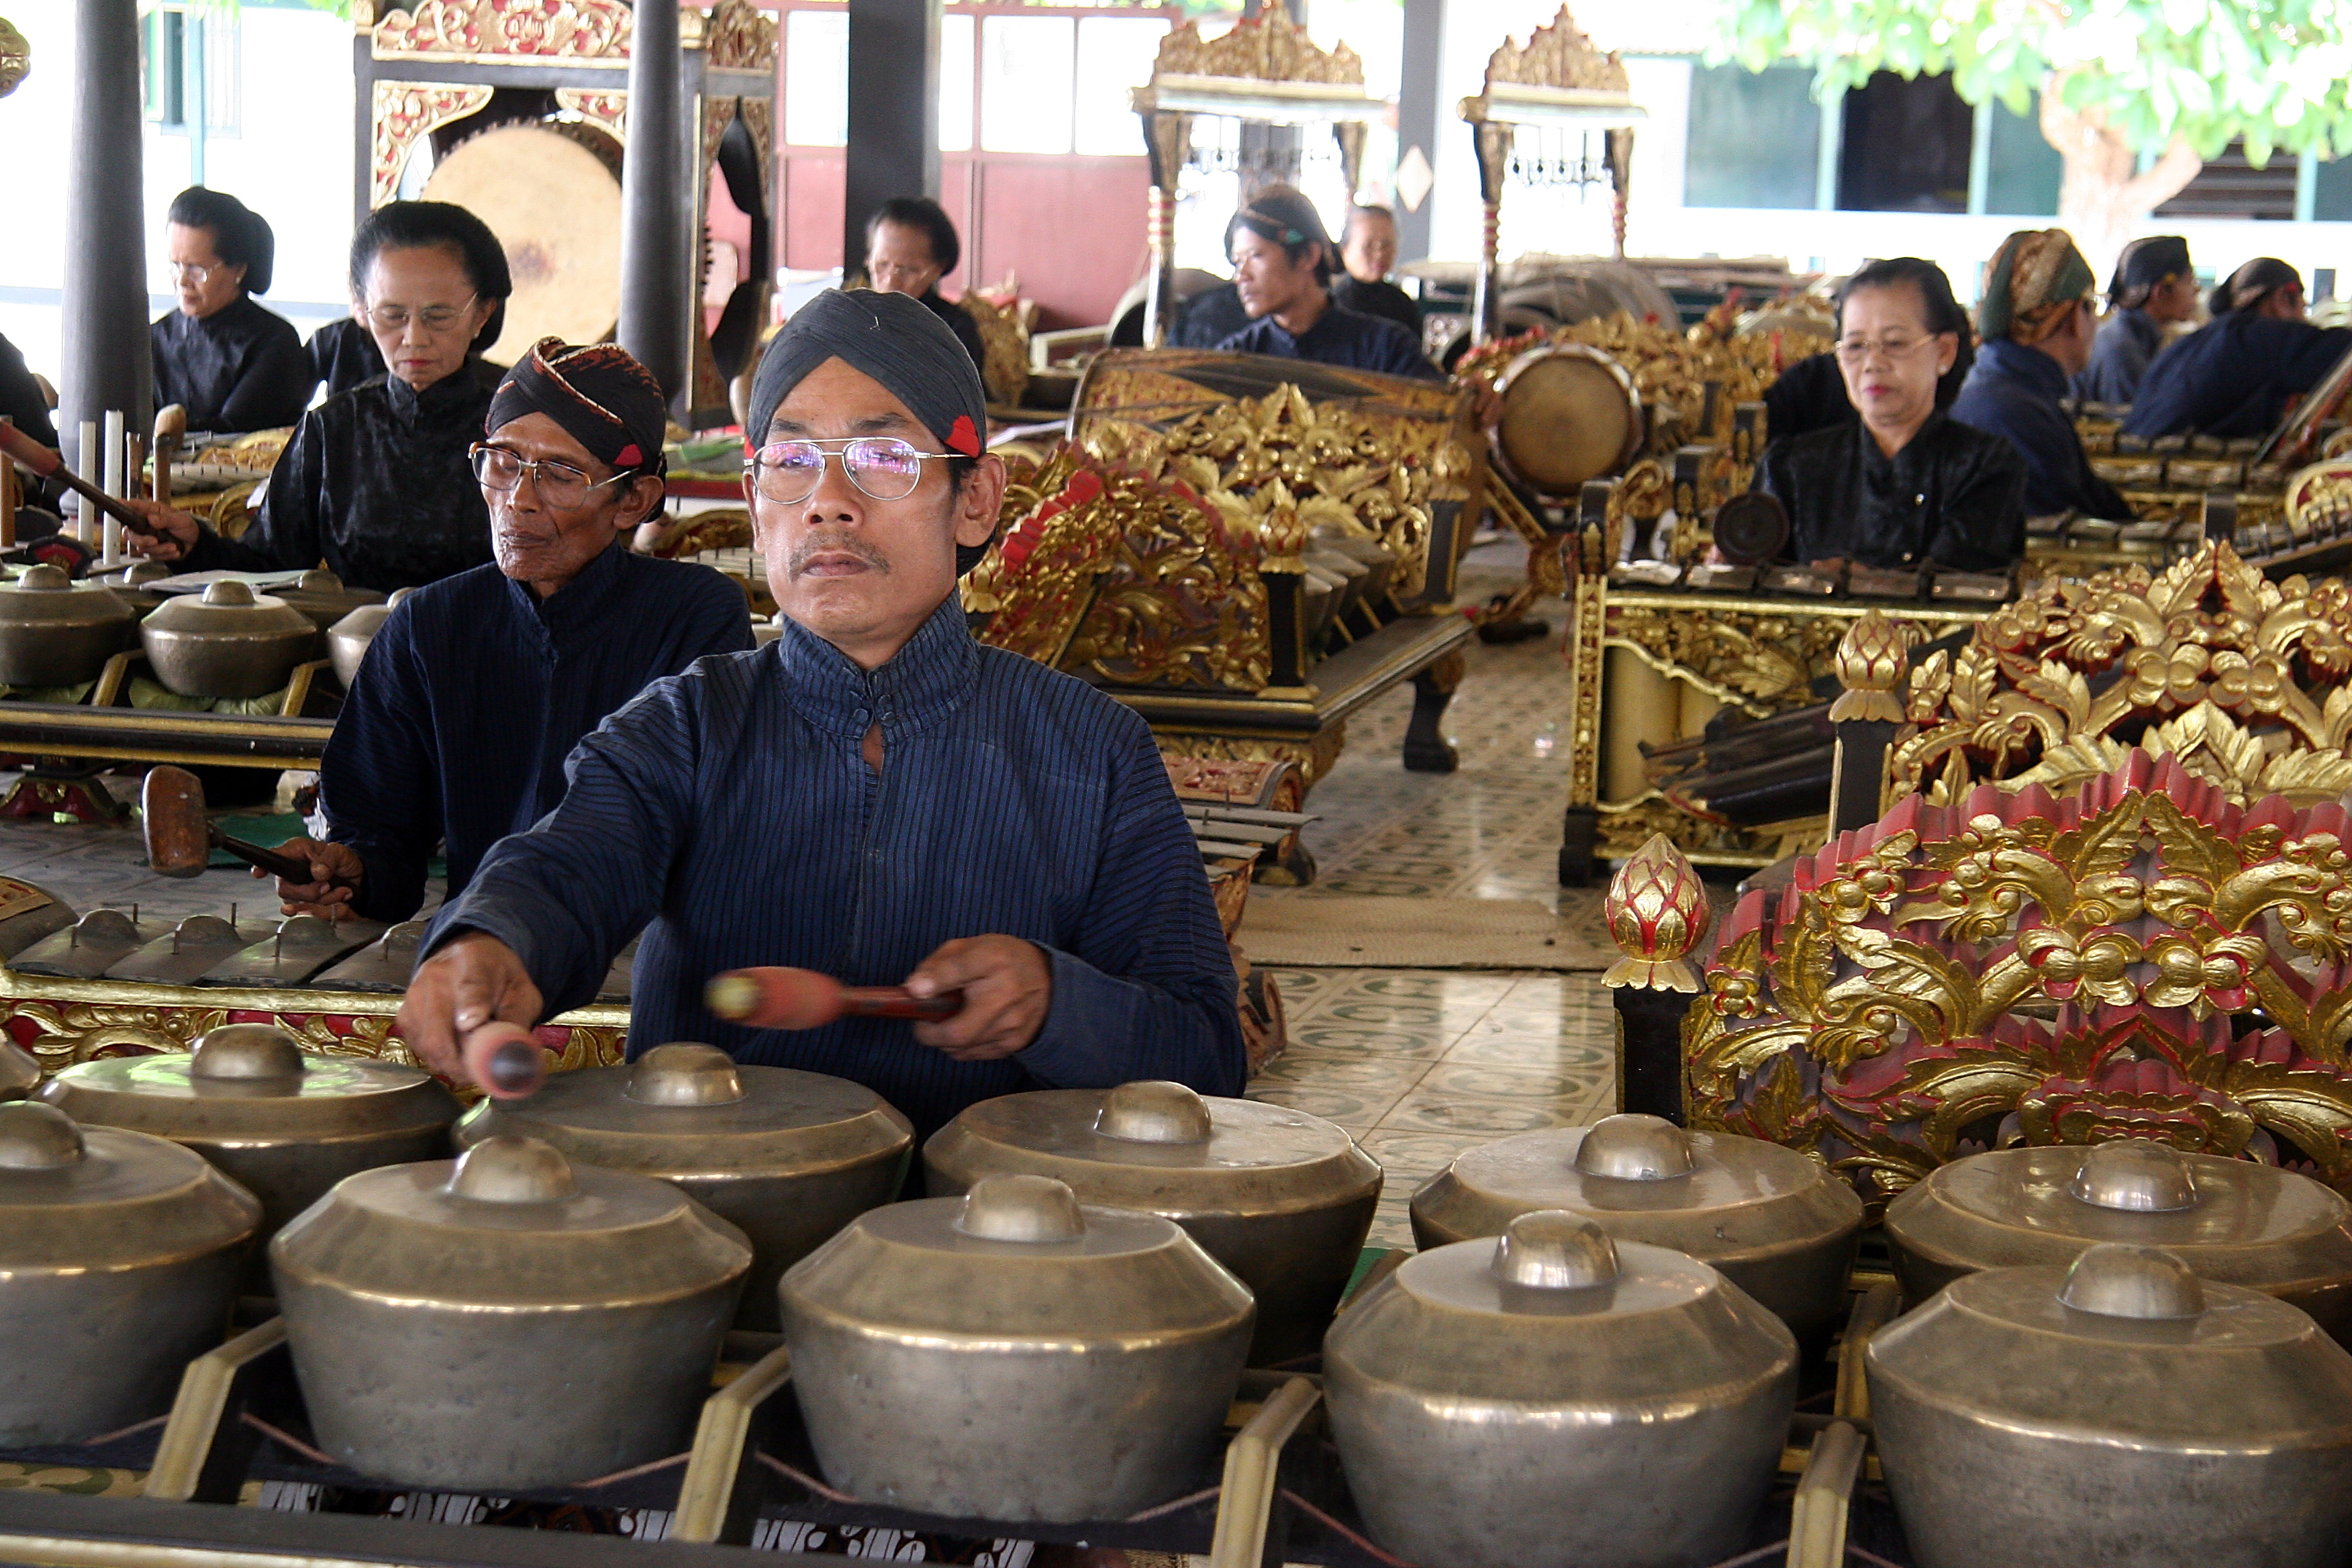 Playing the gamelan in the sultan's palace, Java Yogyakarta Indonesia.jpg - Indonesia Java Yogyakarta. Playing the gamelan in the sultan's palace